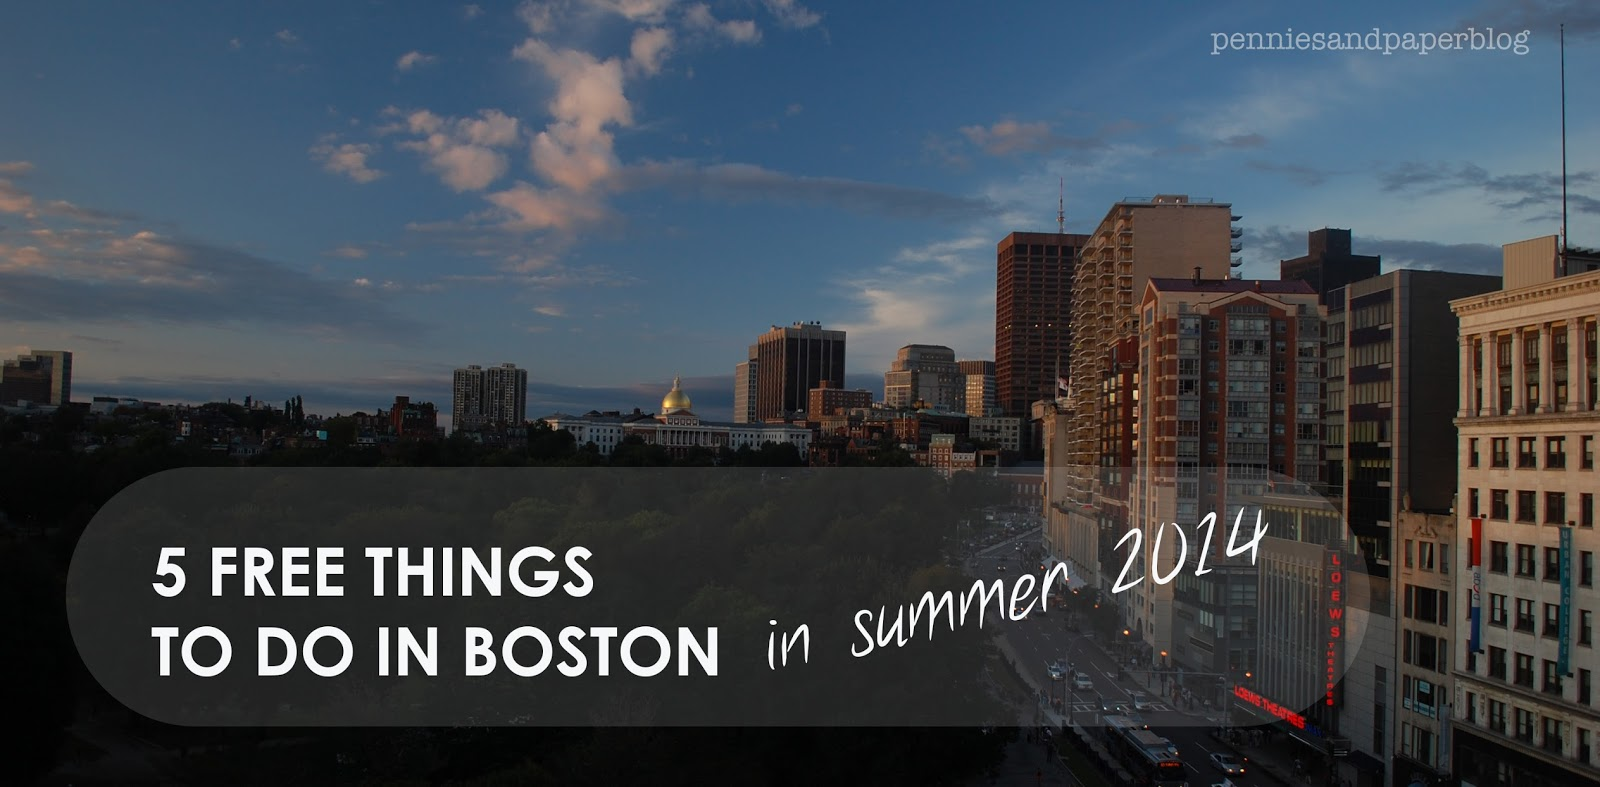 5 Free Things to Do in Boston in Summer 2014 | Pennies & Paper Blog